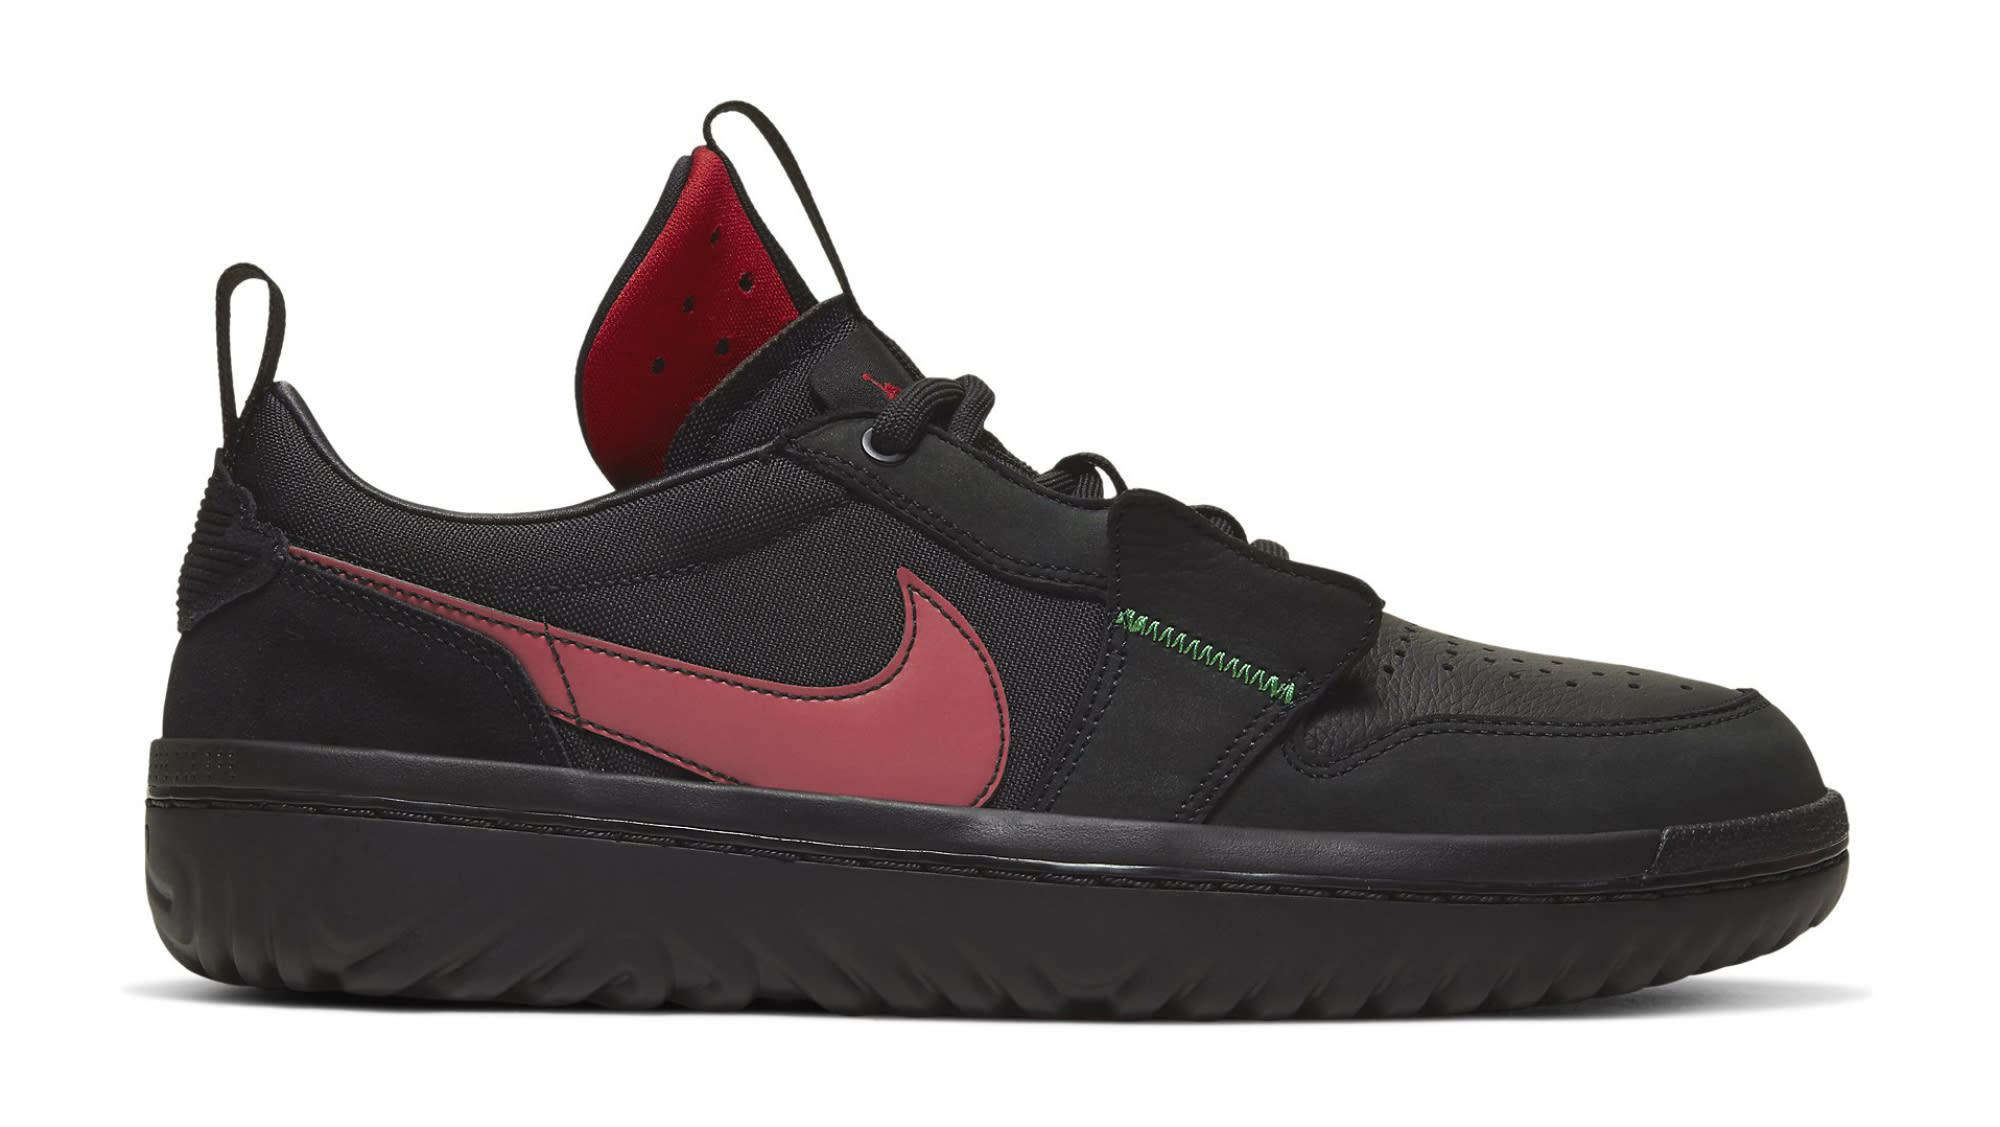 ghetto-gastro-air-jordan-1-low-react-fearless-ones-ct6416-001-release-date